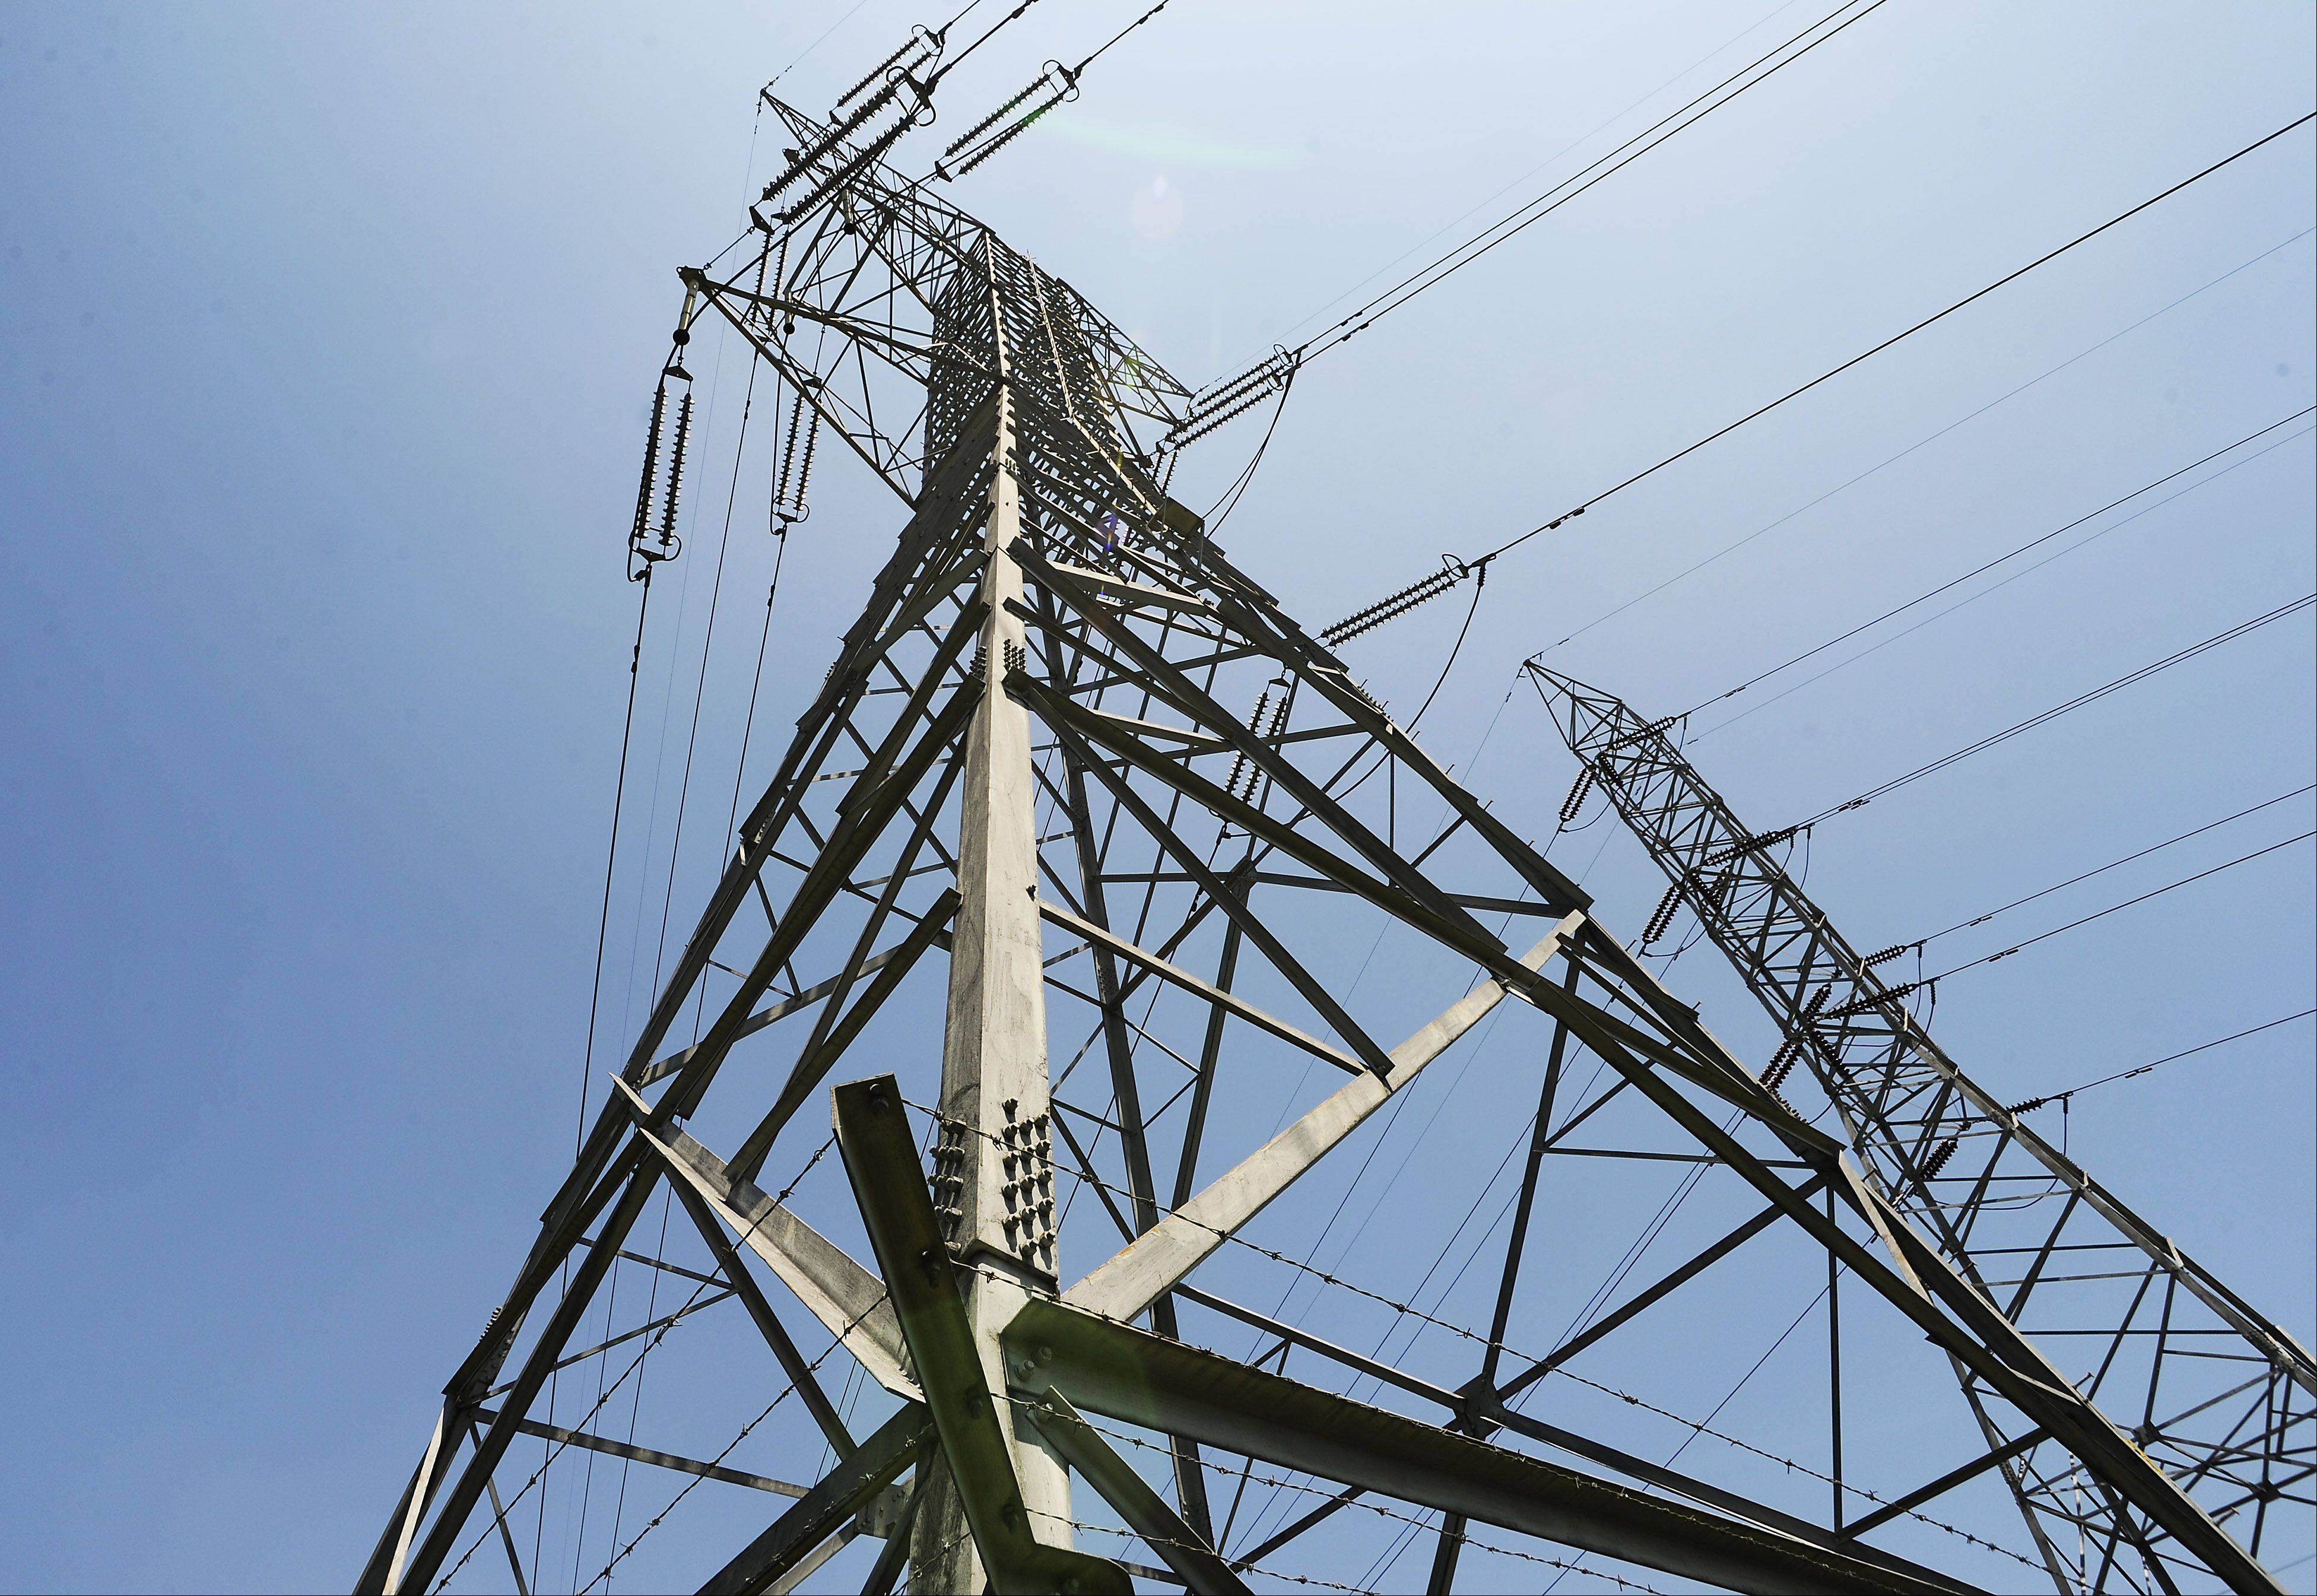 Commonwealth Edison says it's going to tweak the route of a proposed high-voltage transmission line in northern Illinois based on public input.